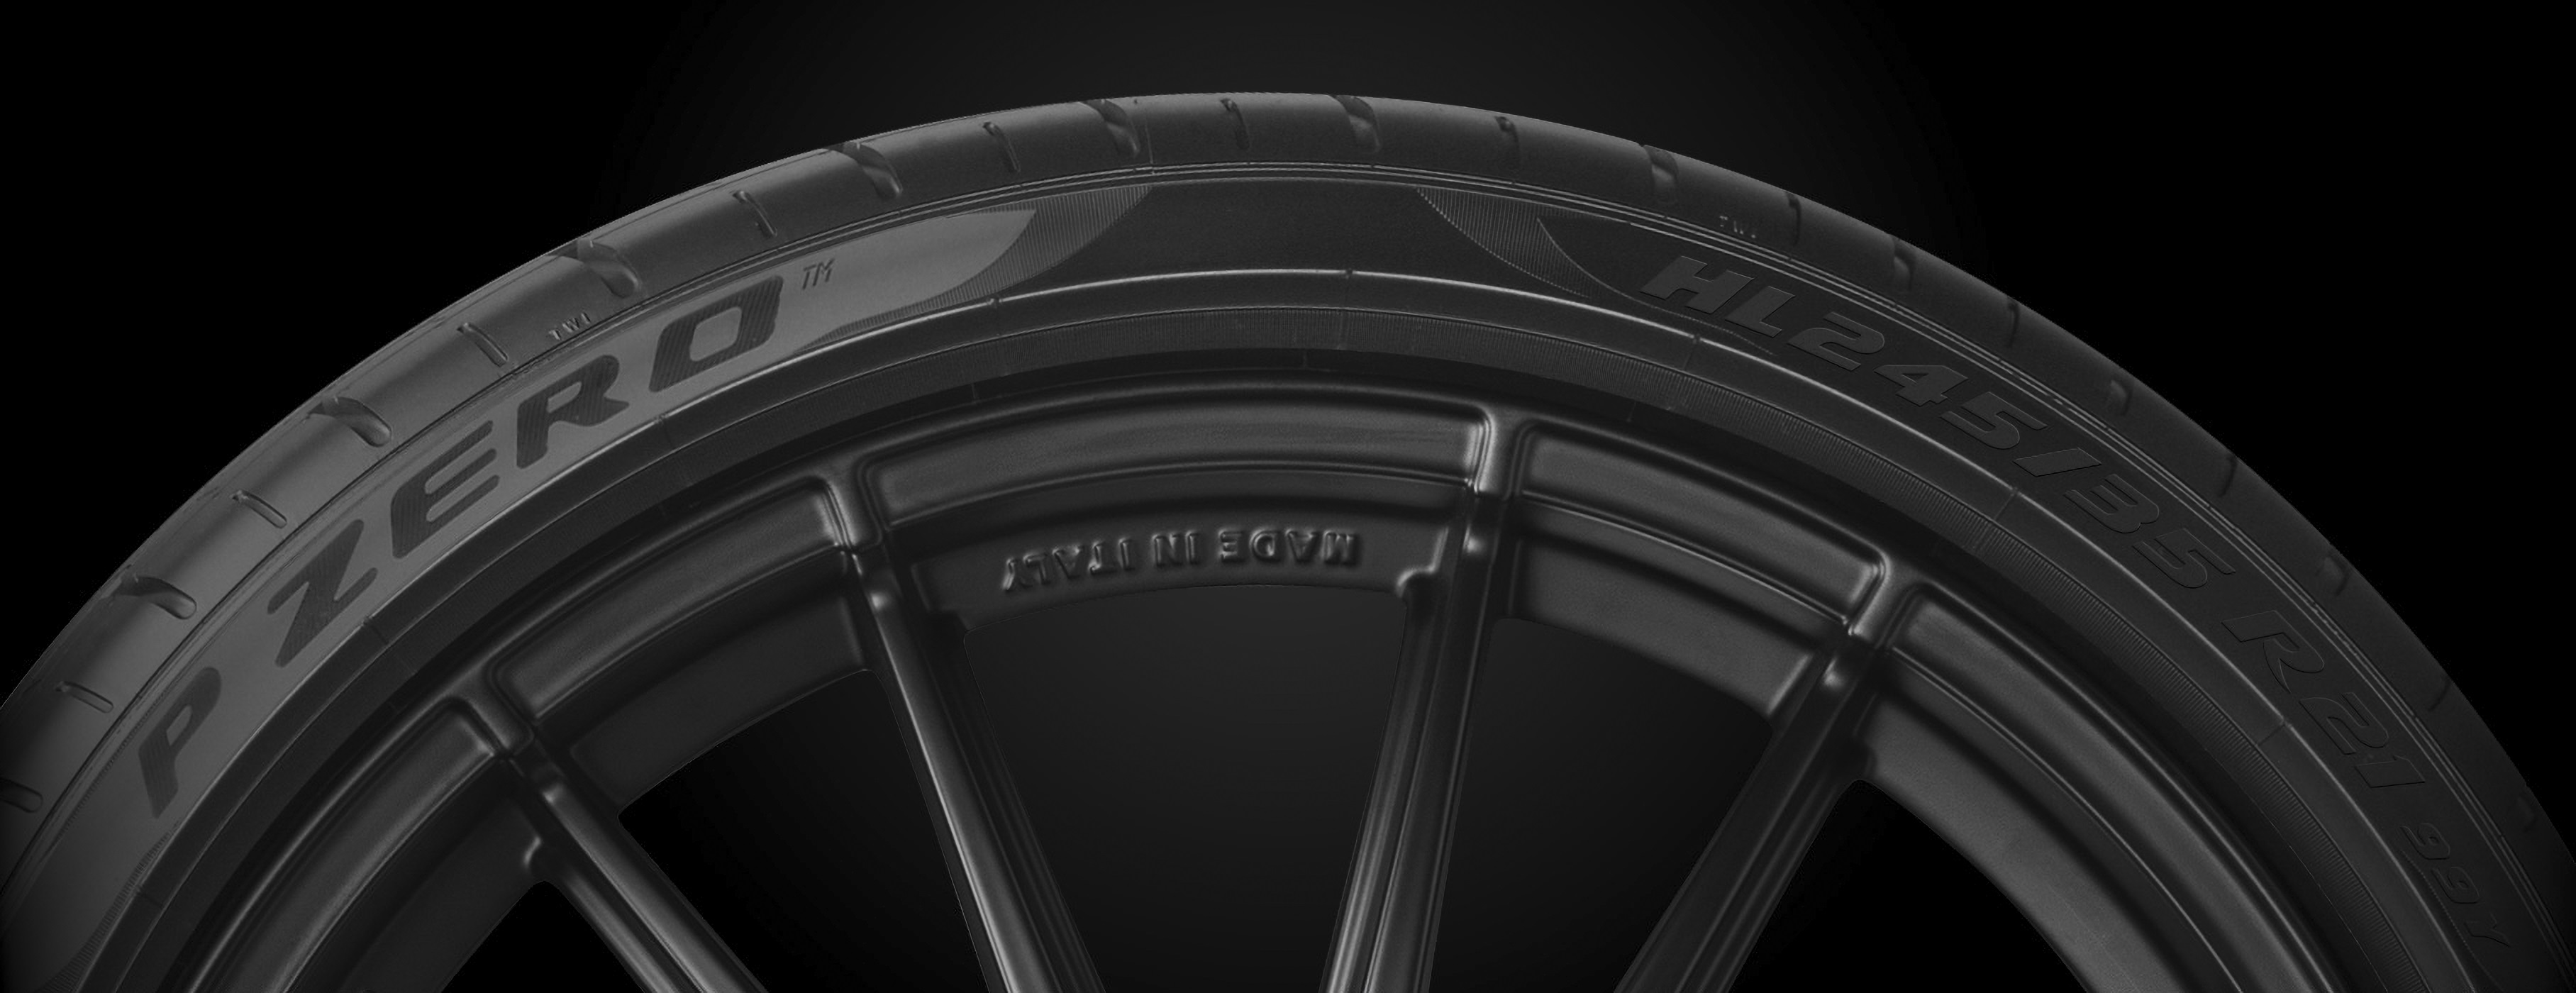 Pirelli launches its first tyre with the new 'hl' high load marking for electric or hybrid cars and suvs